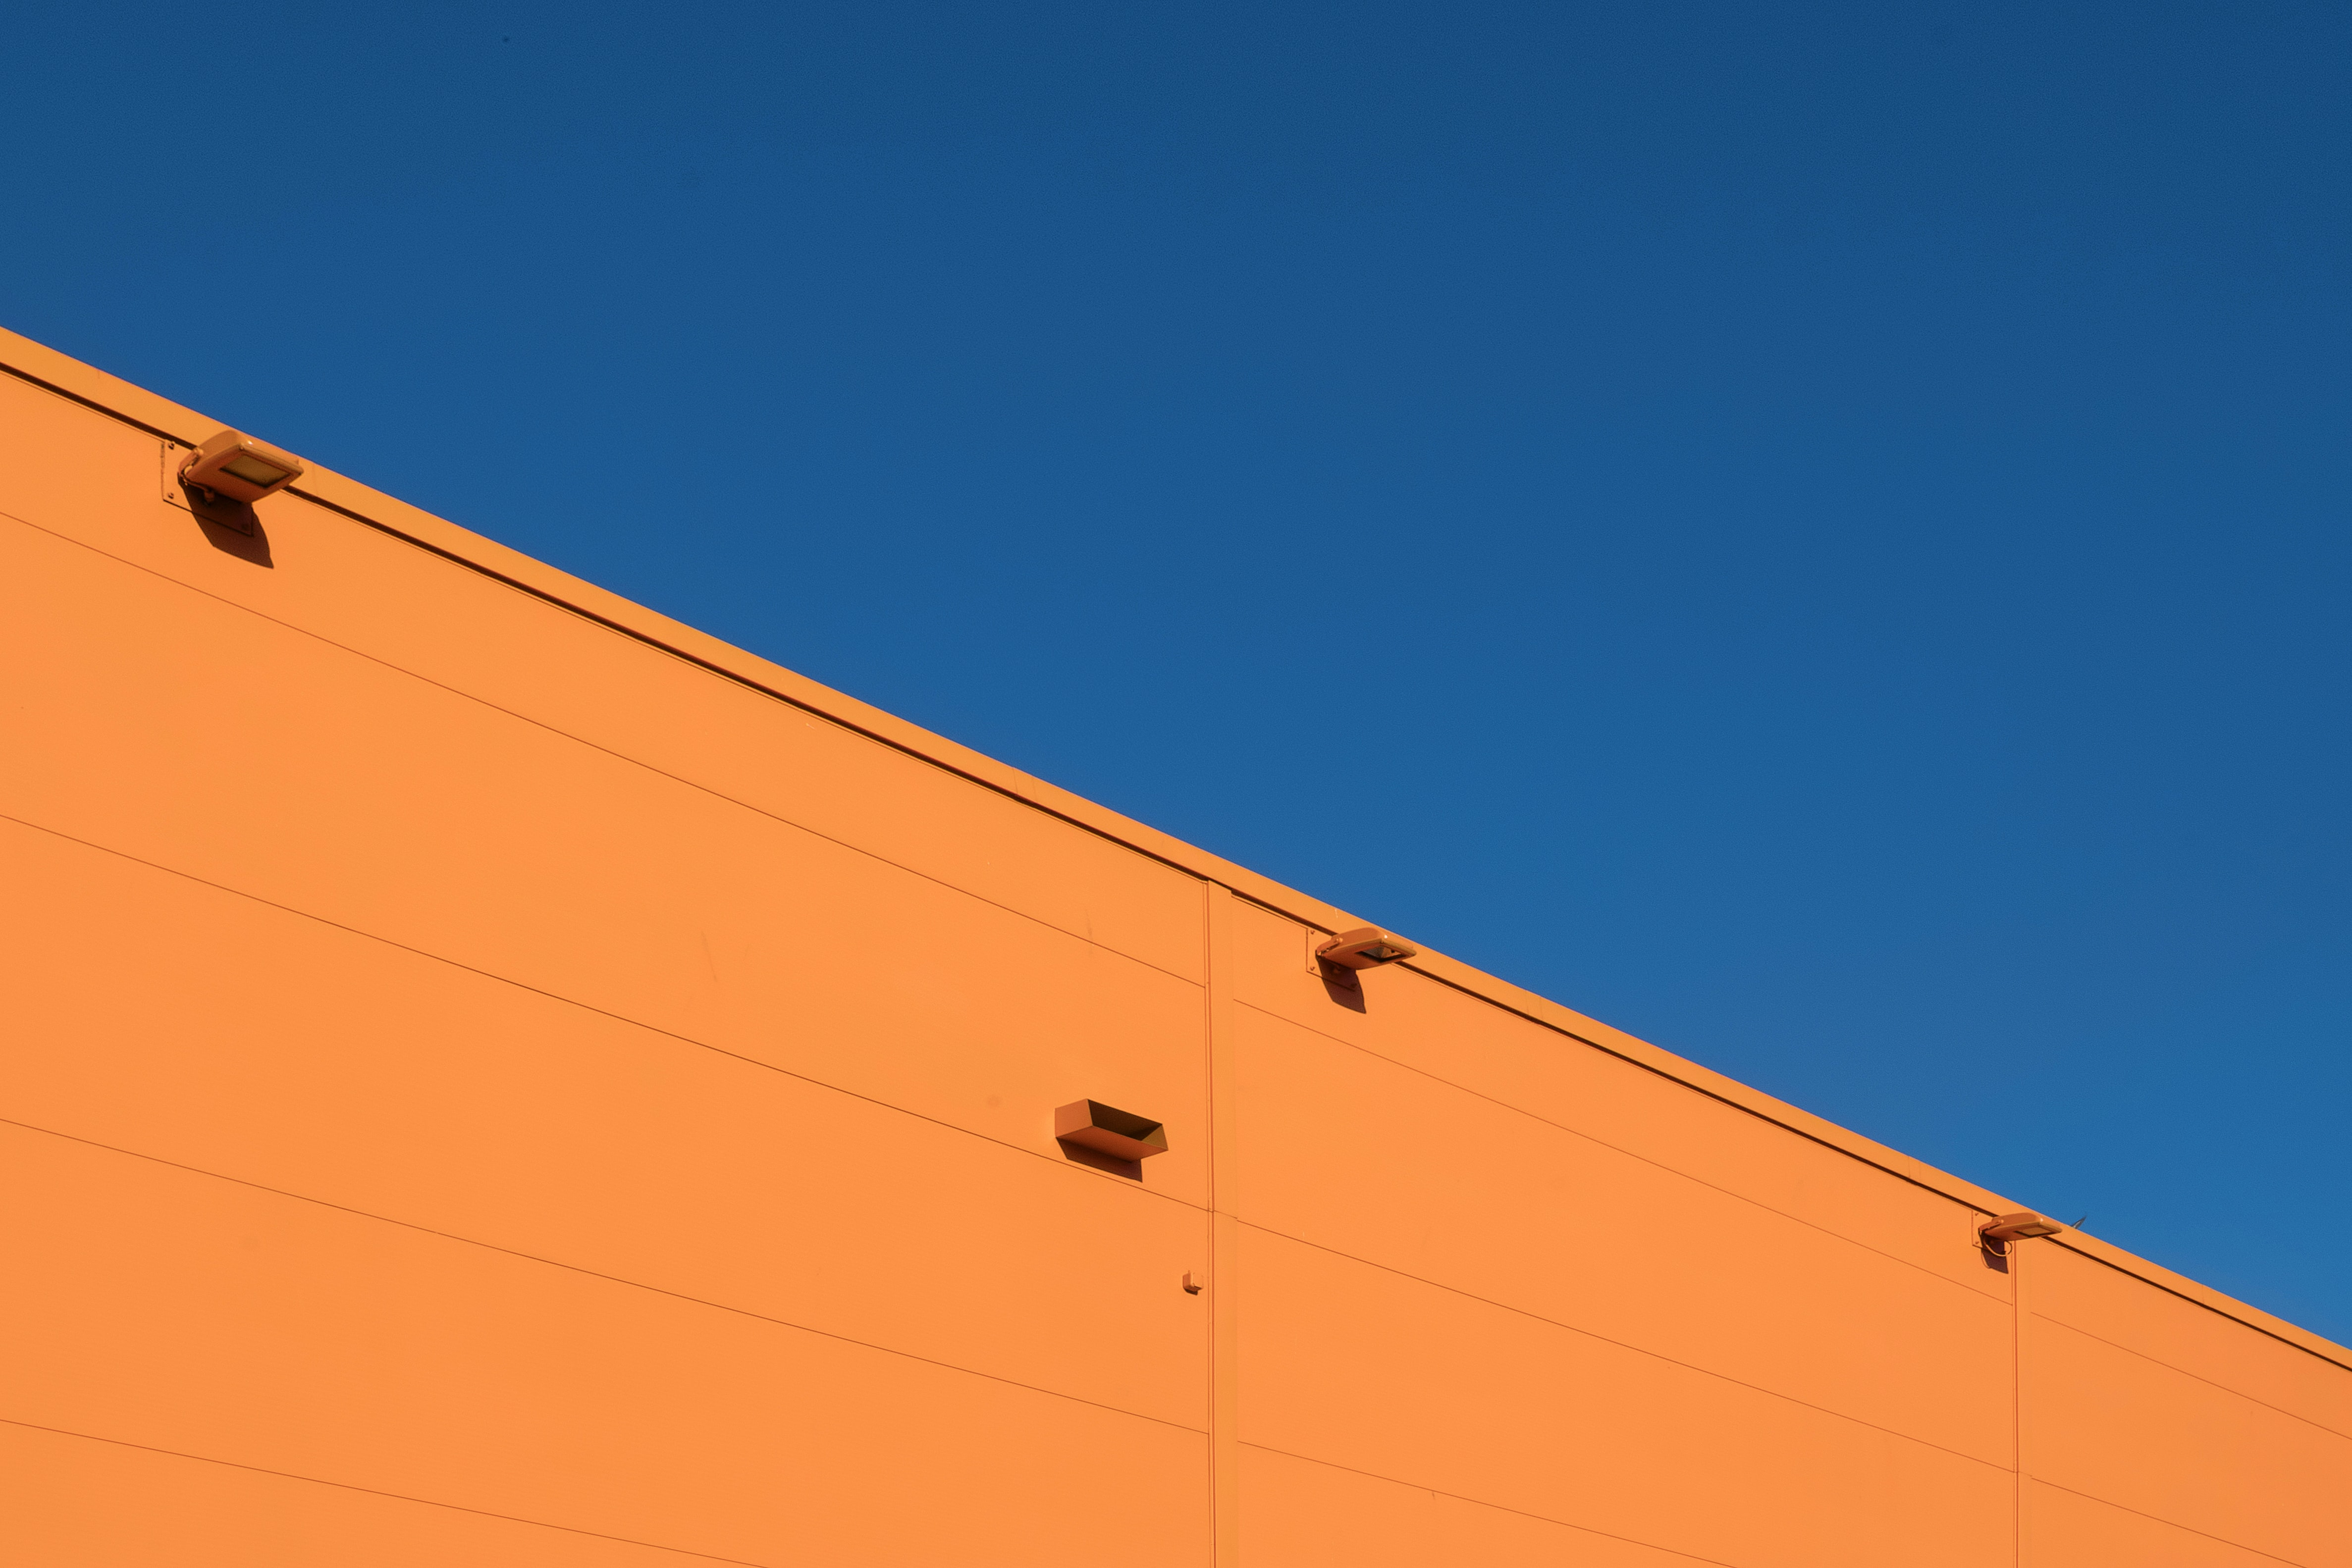 architectural photography of orange concrete structure